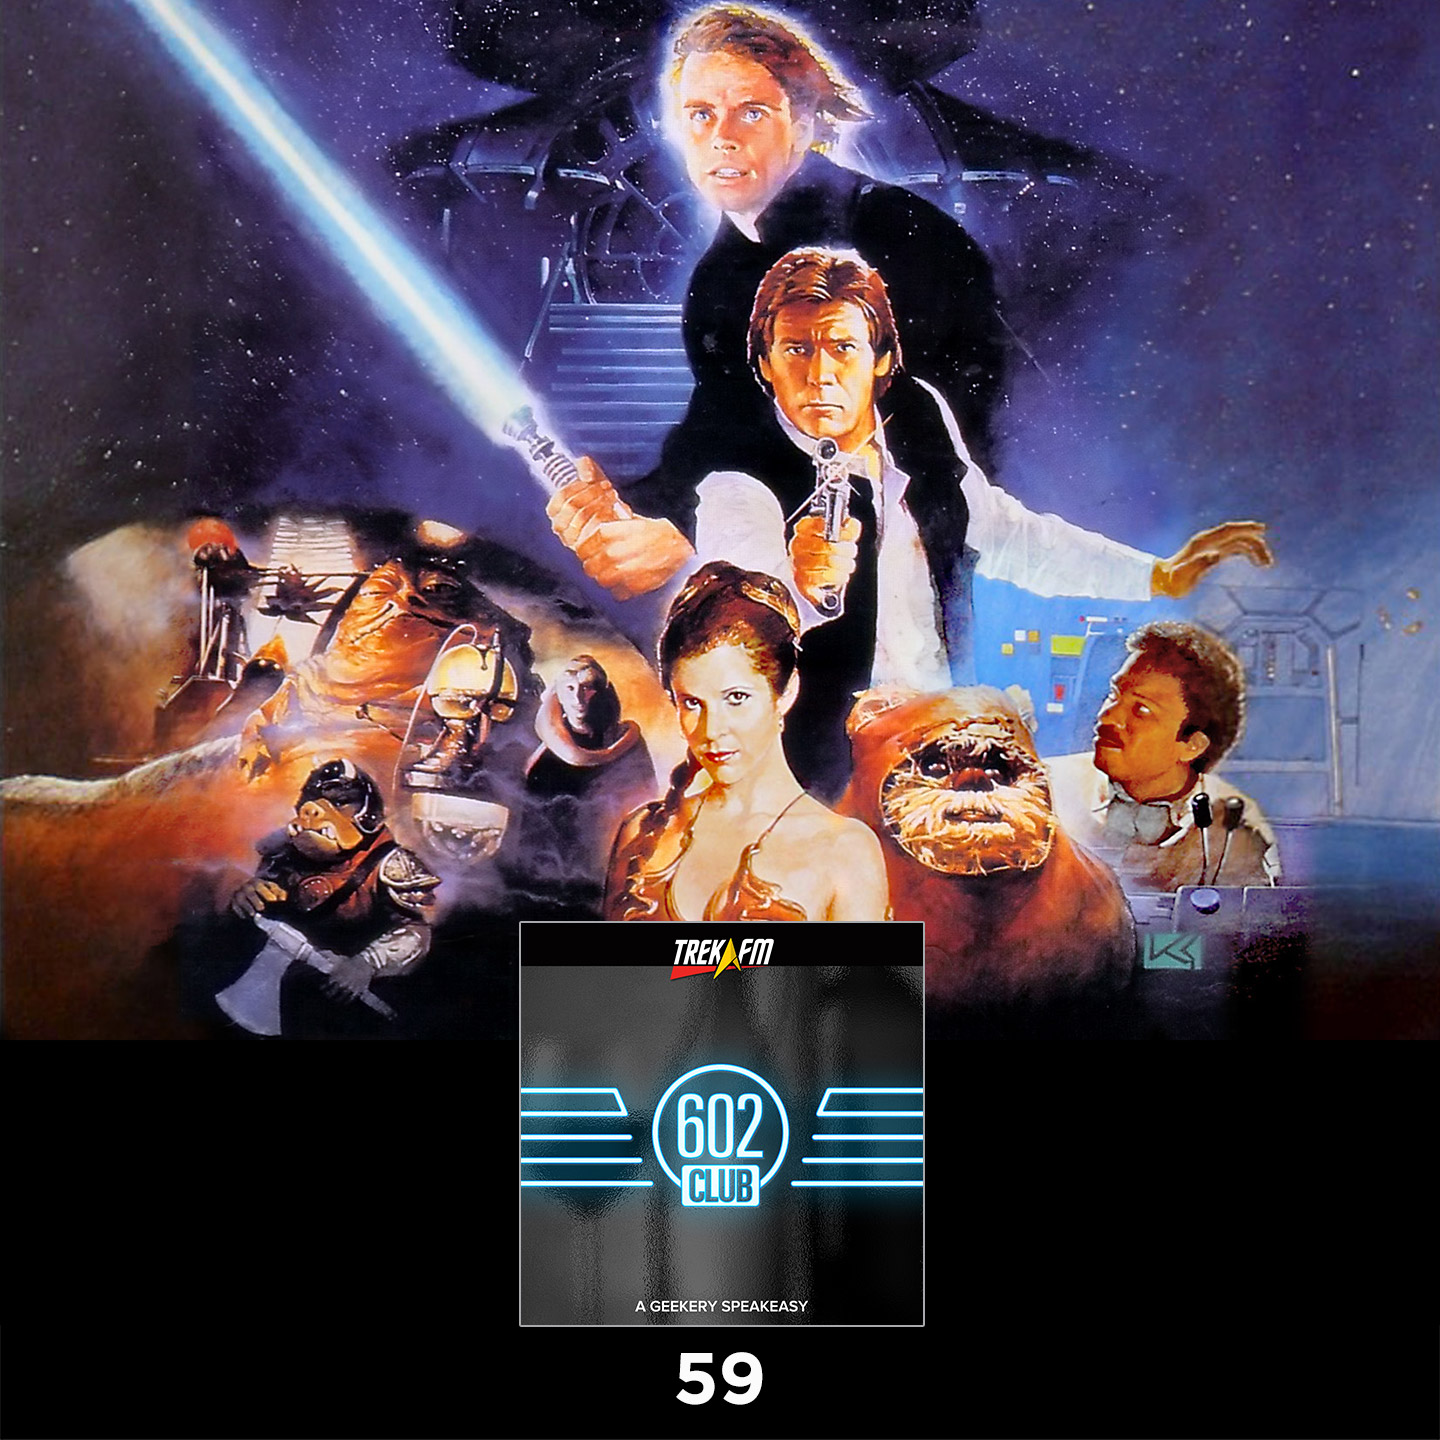 59: Spark of Rebellion in Vader